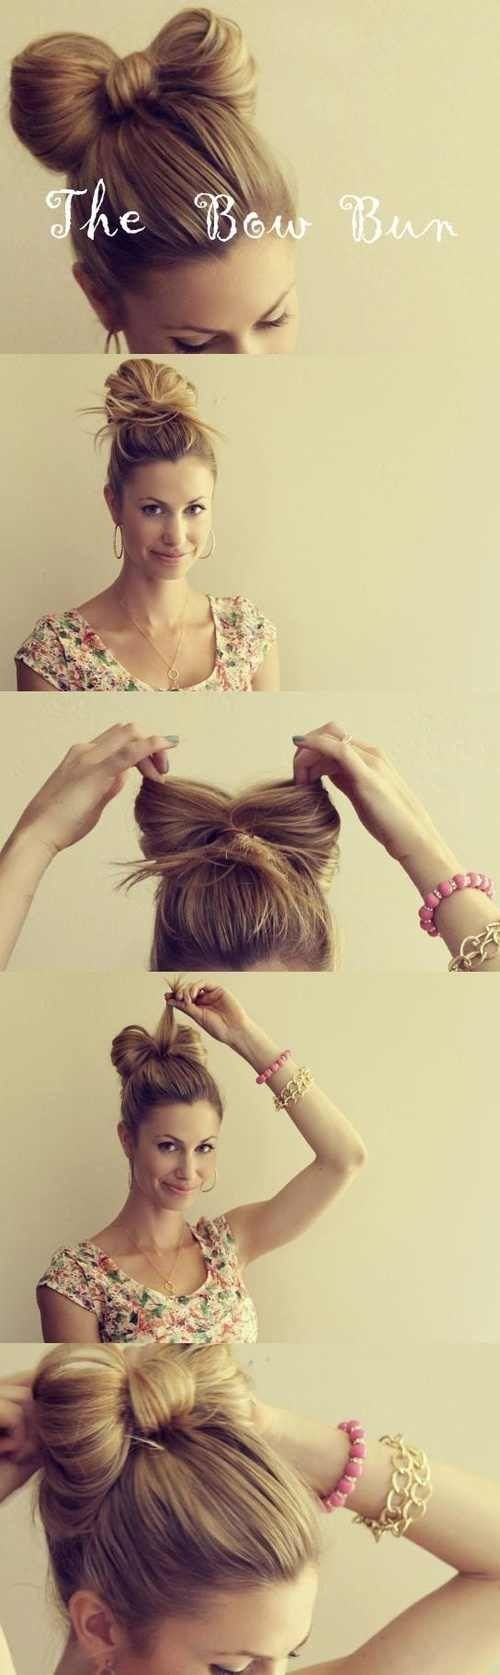 fun natural look.  good for ballet  Hair bow